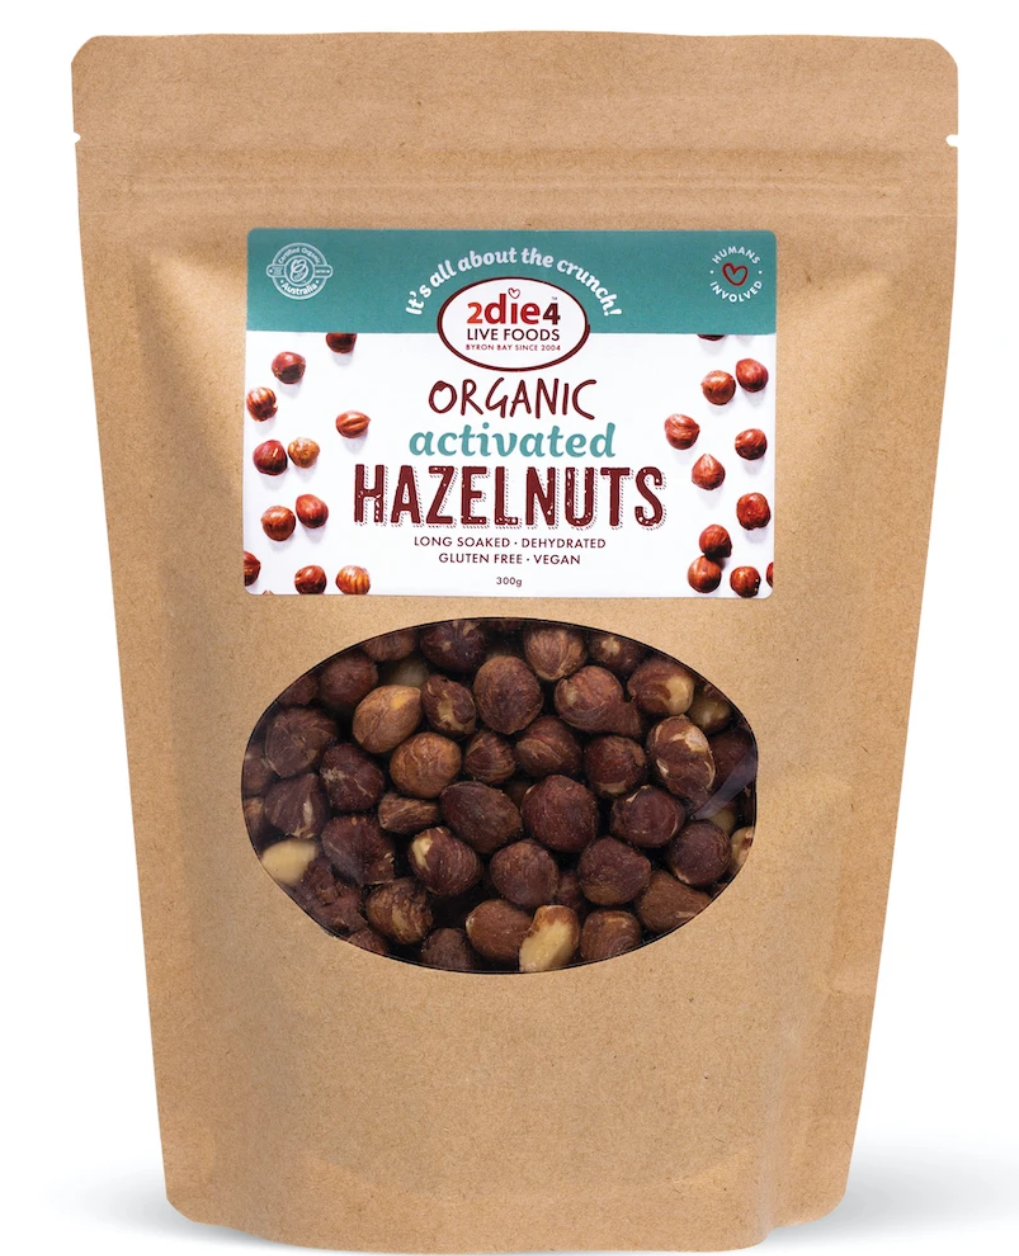 2die4 ACTIVATED ORGANIC HAZELNUTS